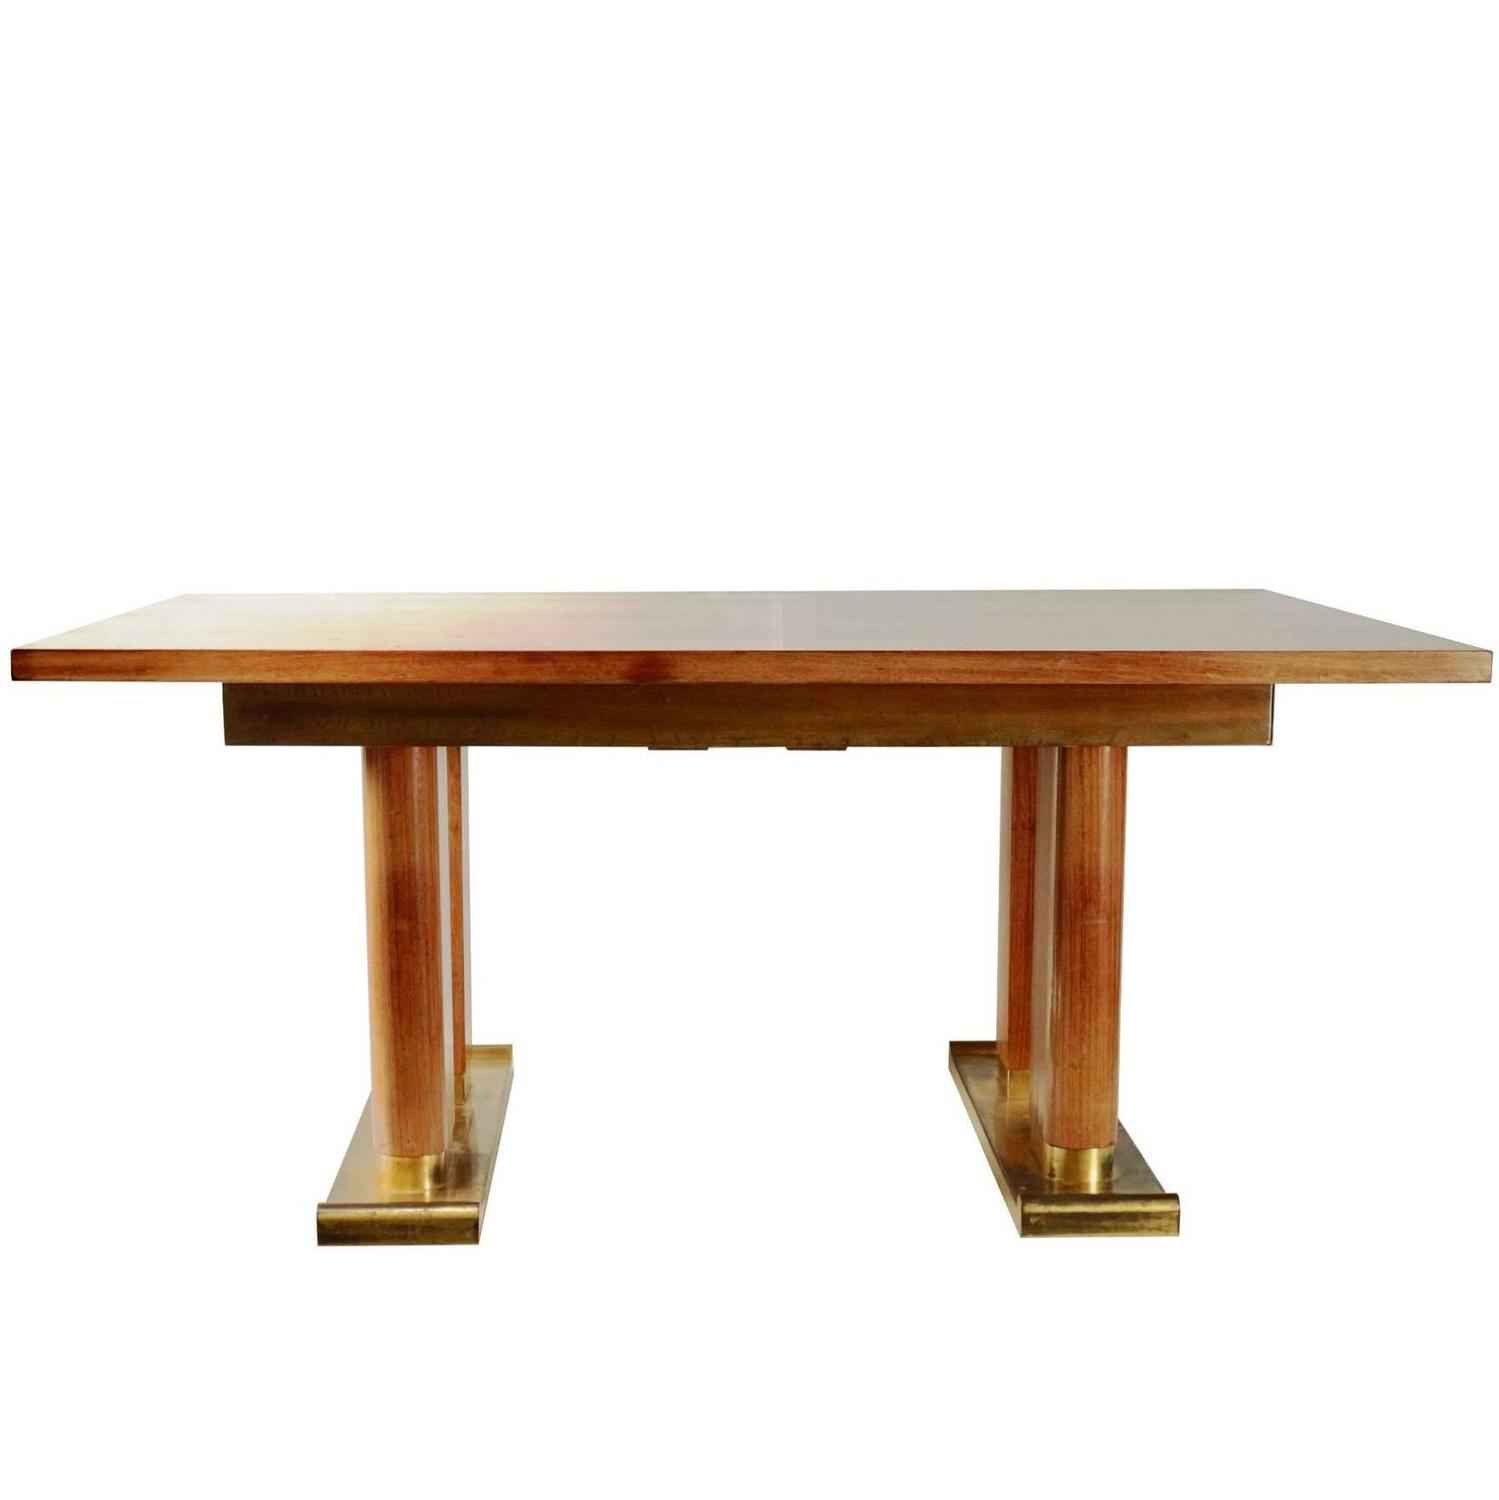 Dining room table by de coene belgium 1940s gilded for 7 foot dining room table